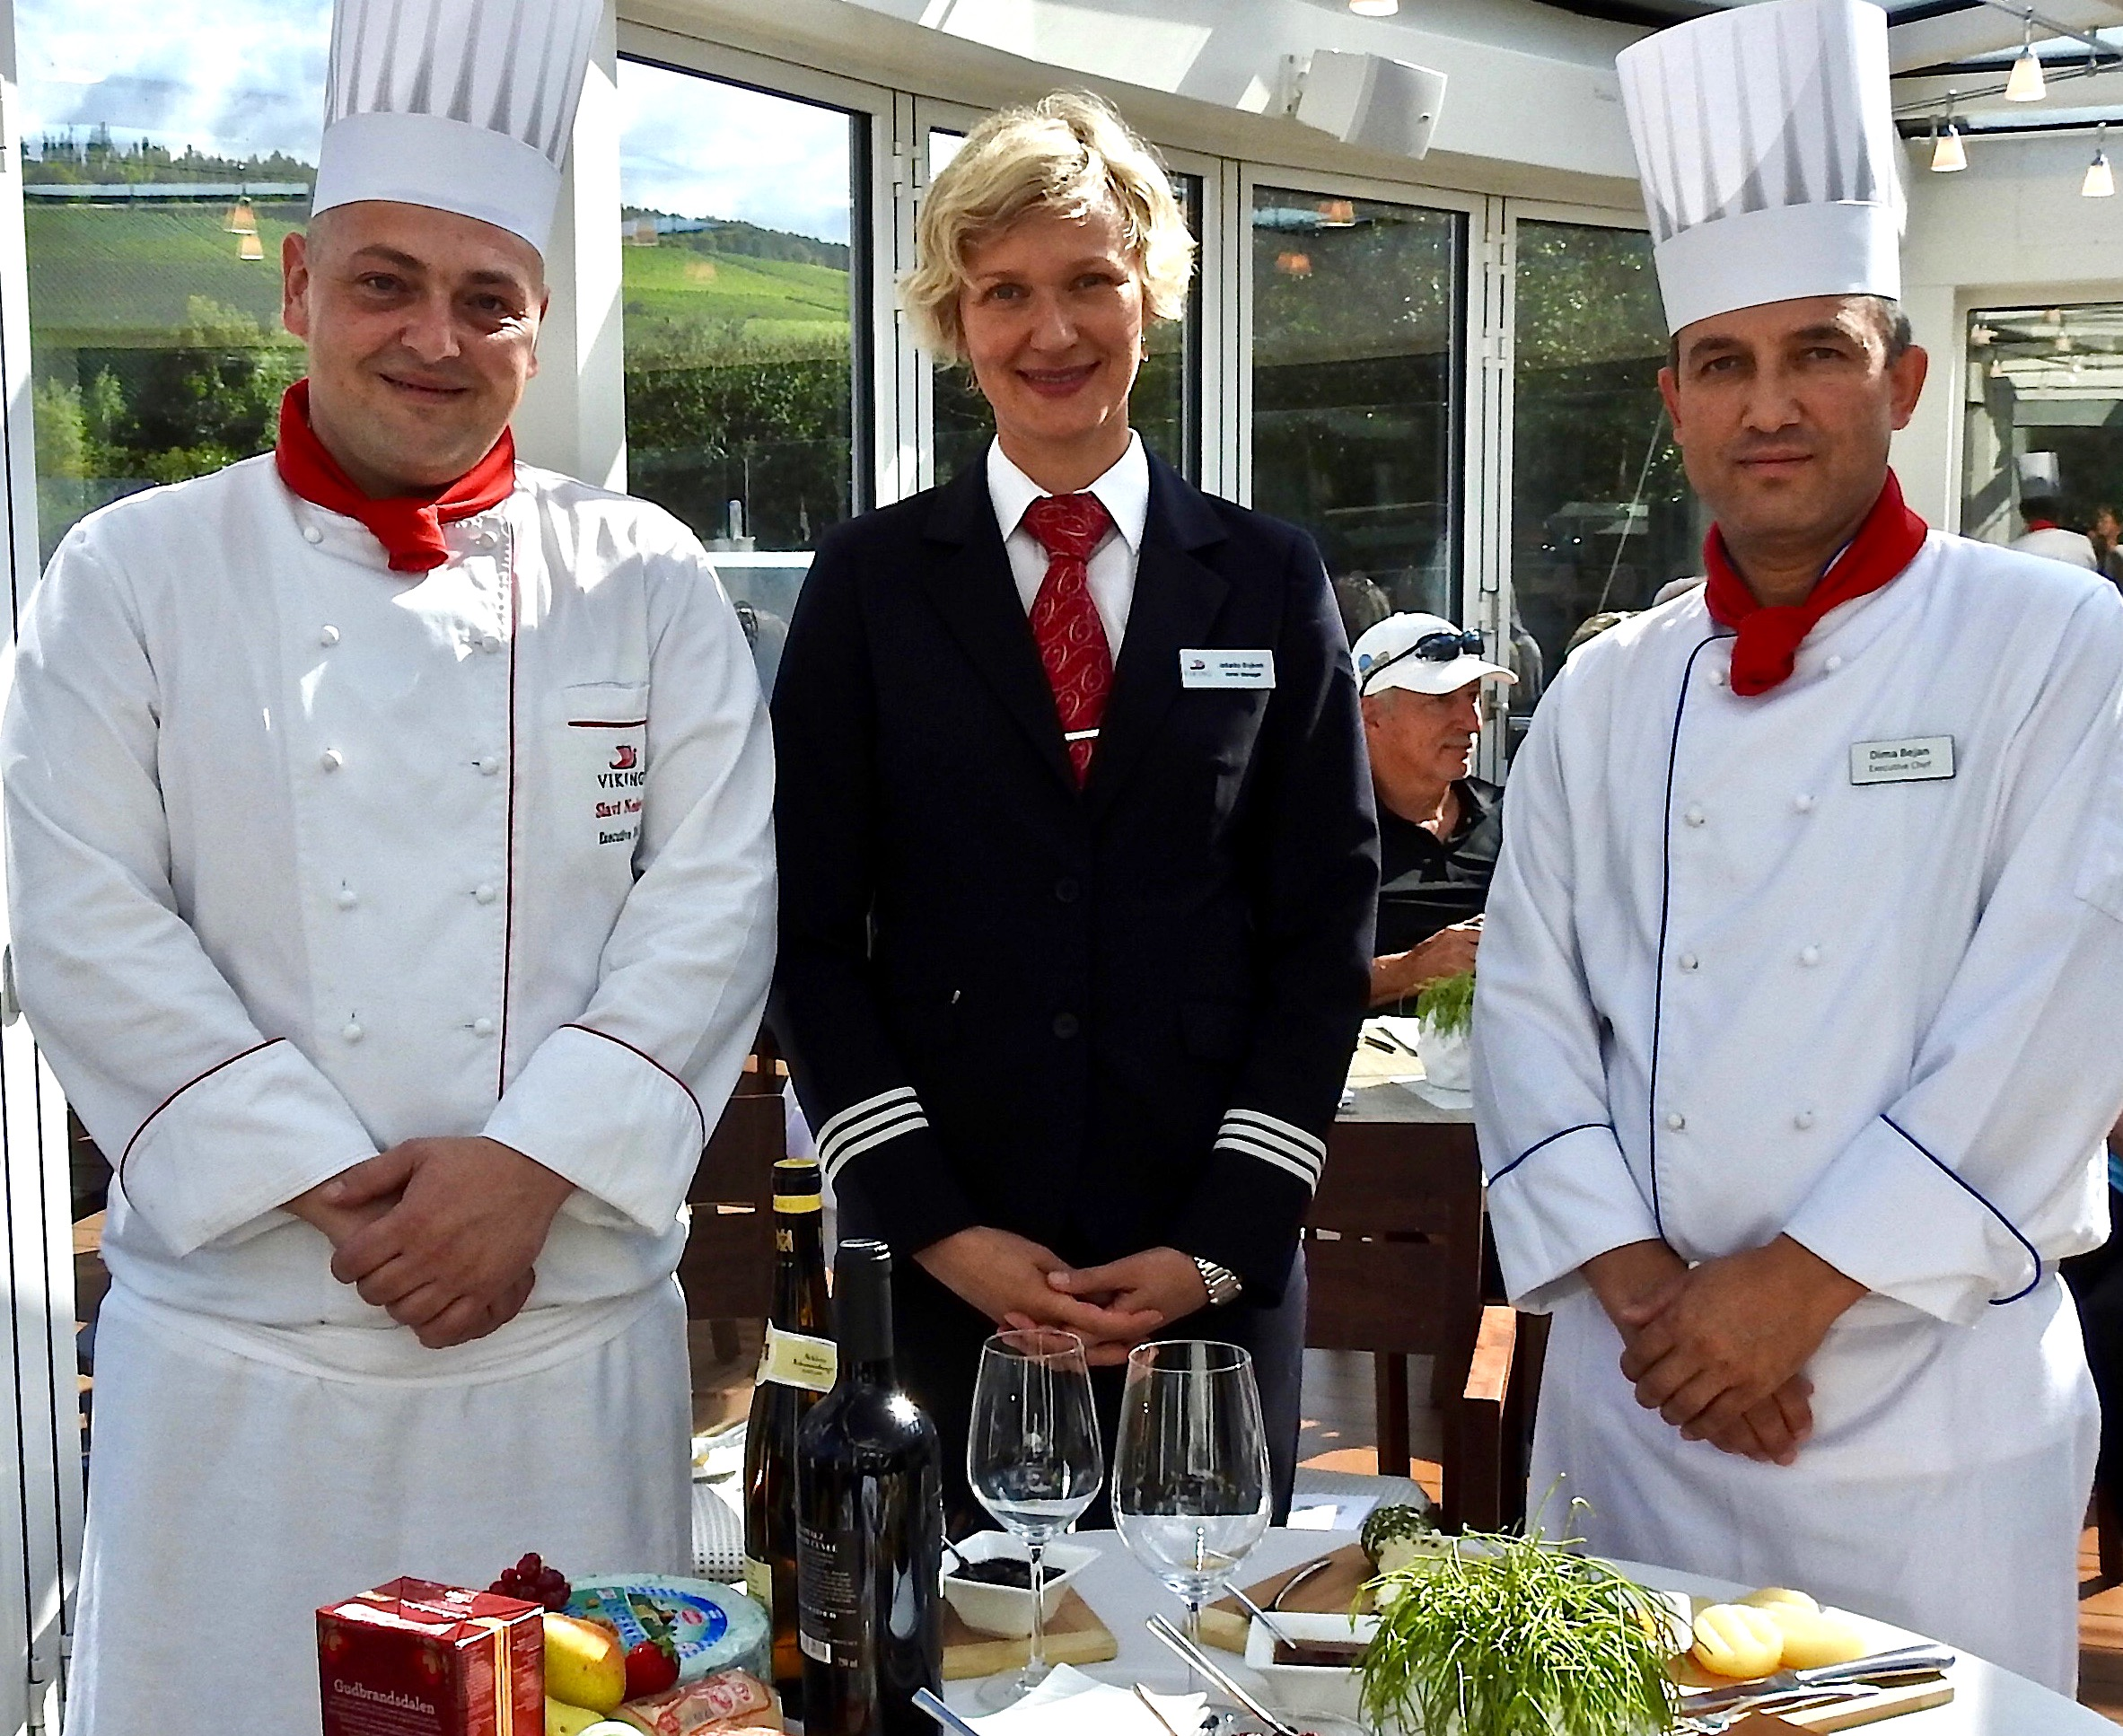 Slavi Nedev, Jadranka Brajkovic, and Dima Bejan assembled the cheeses of the region.